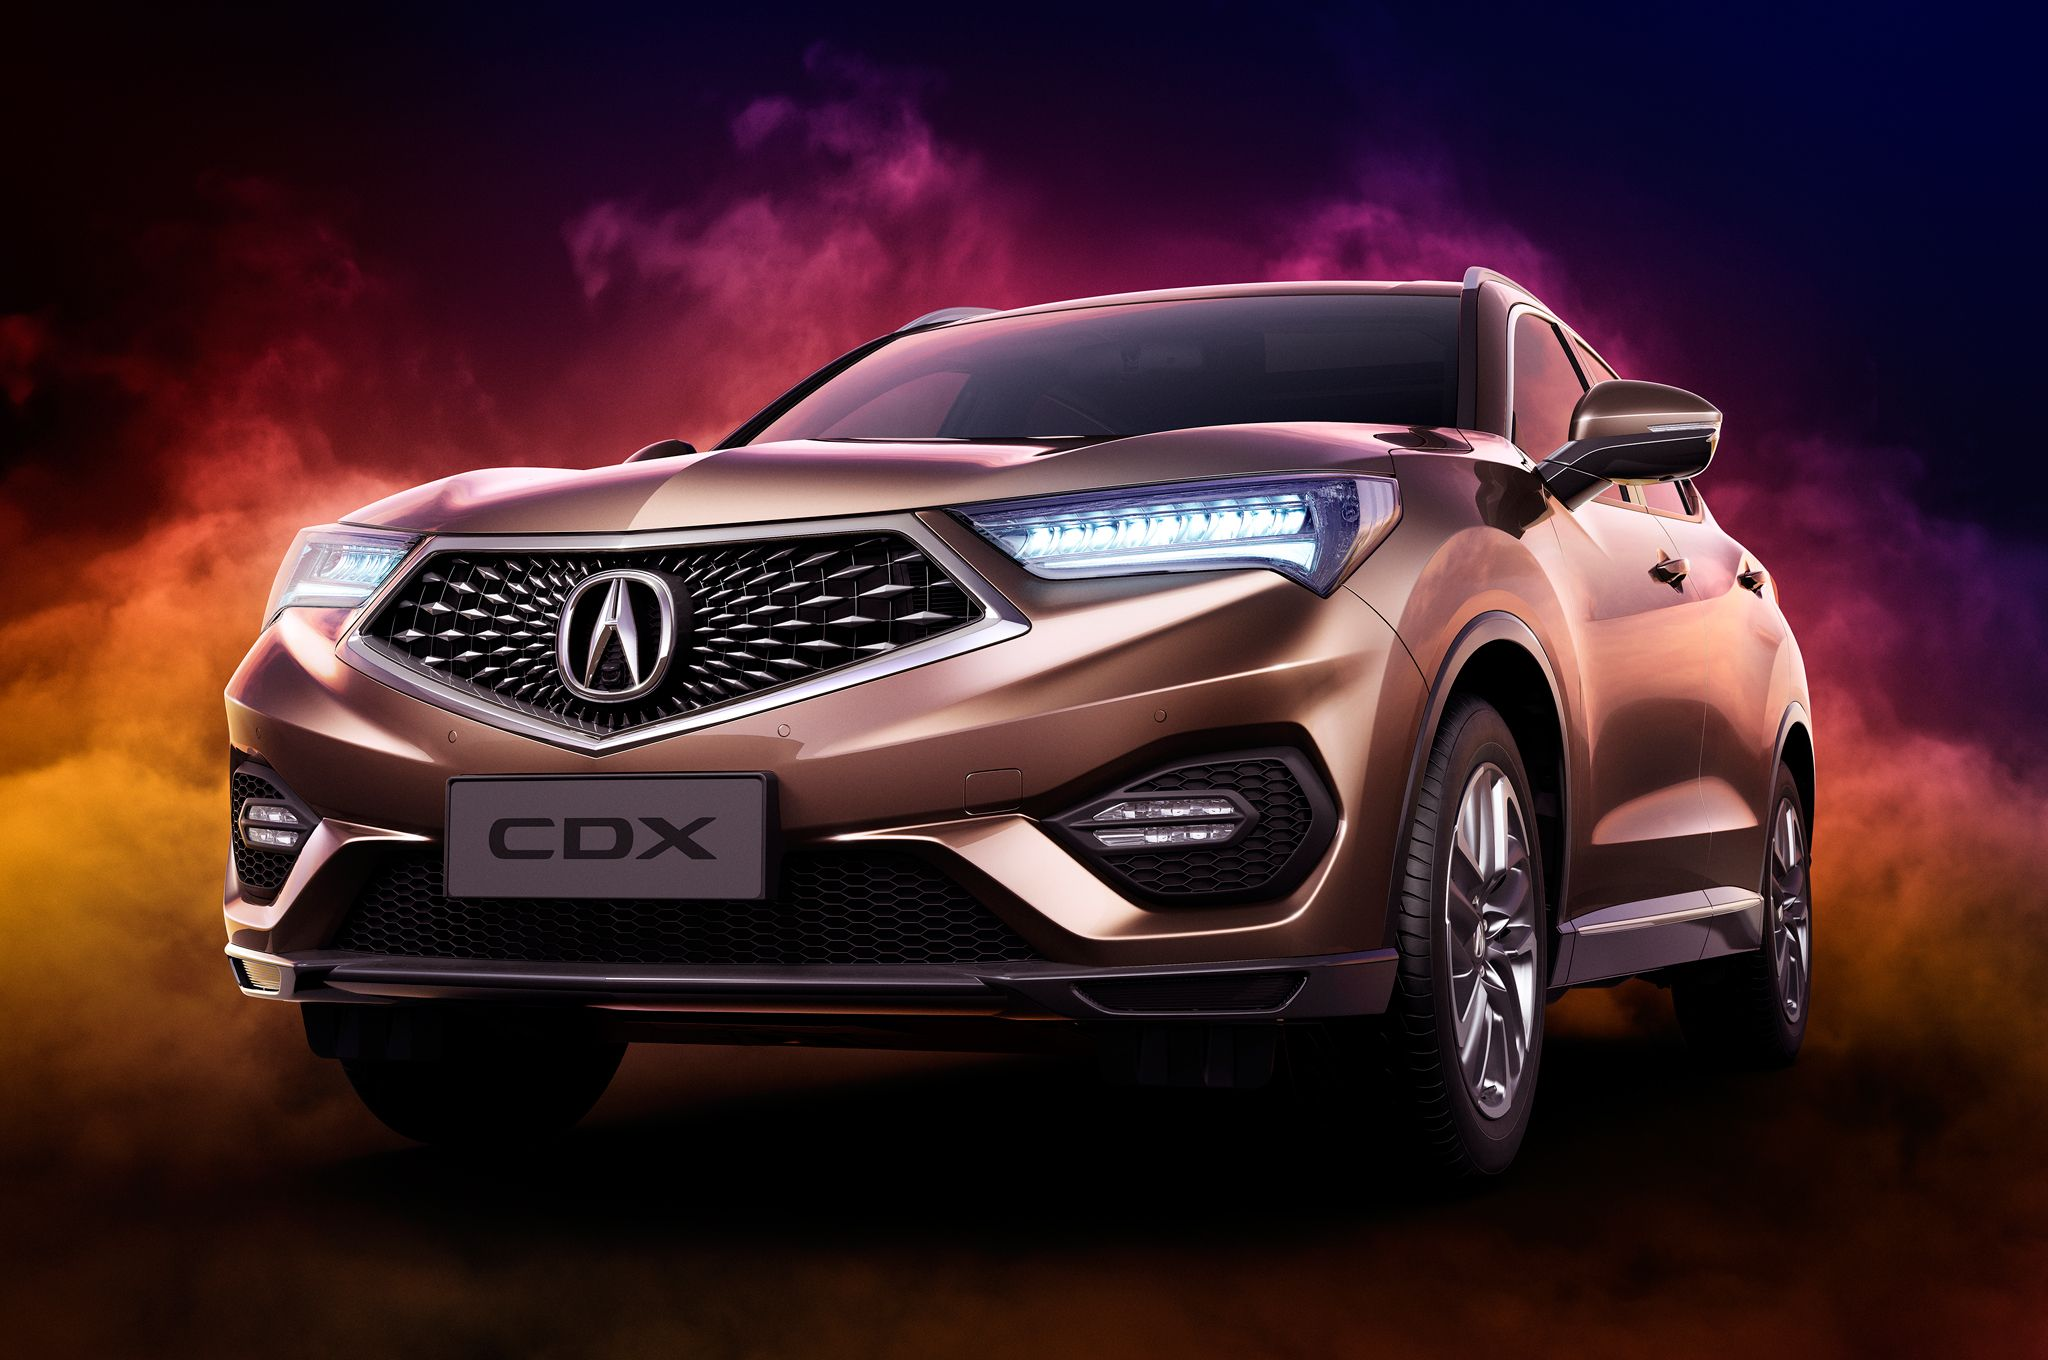 China Only Acura Cdx Bows At Beijing Auto Show A Crossover With